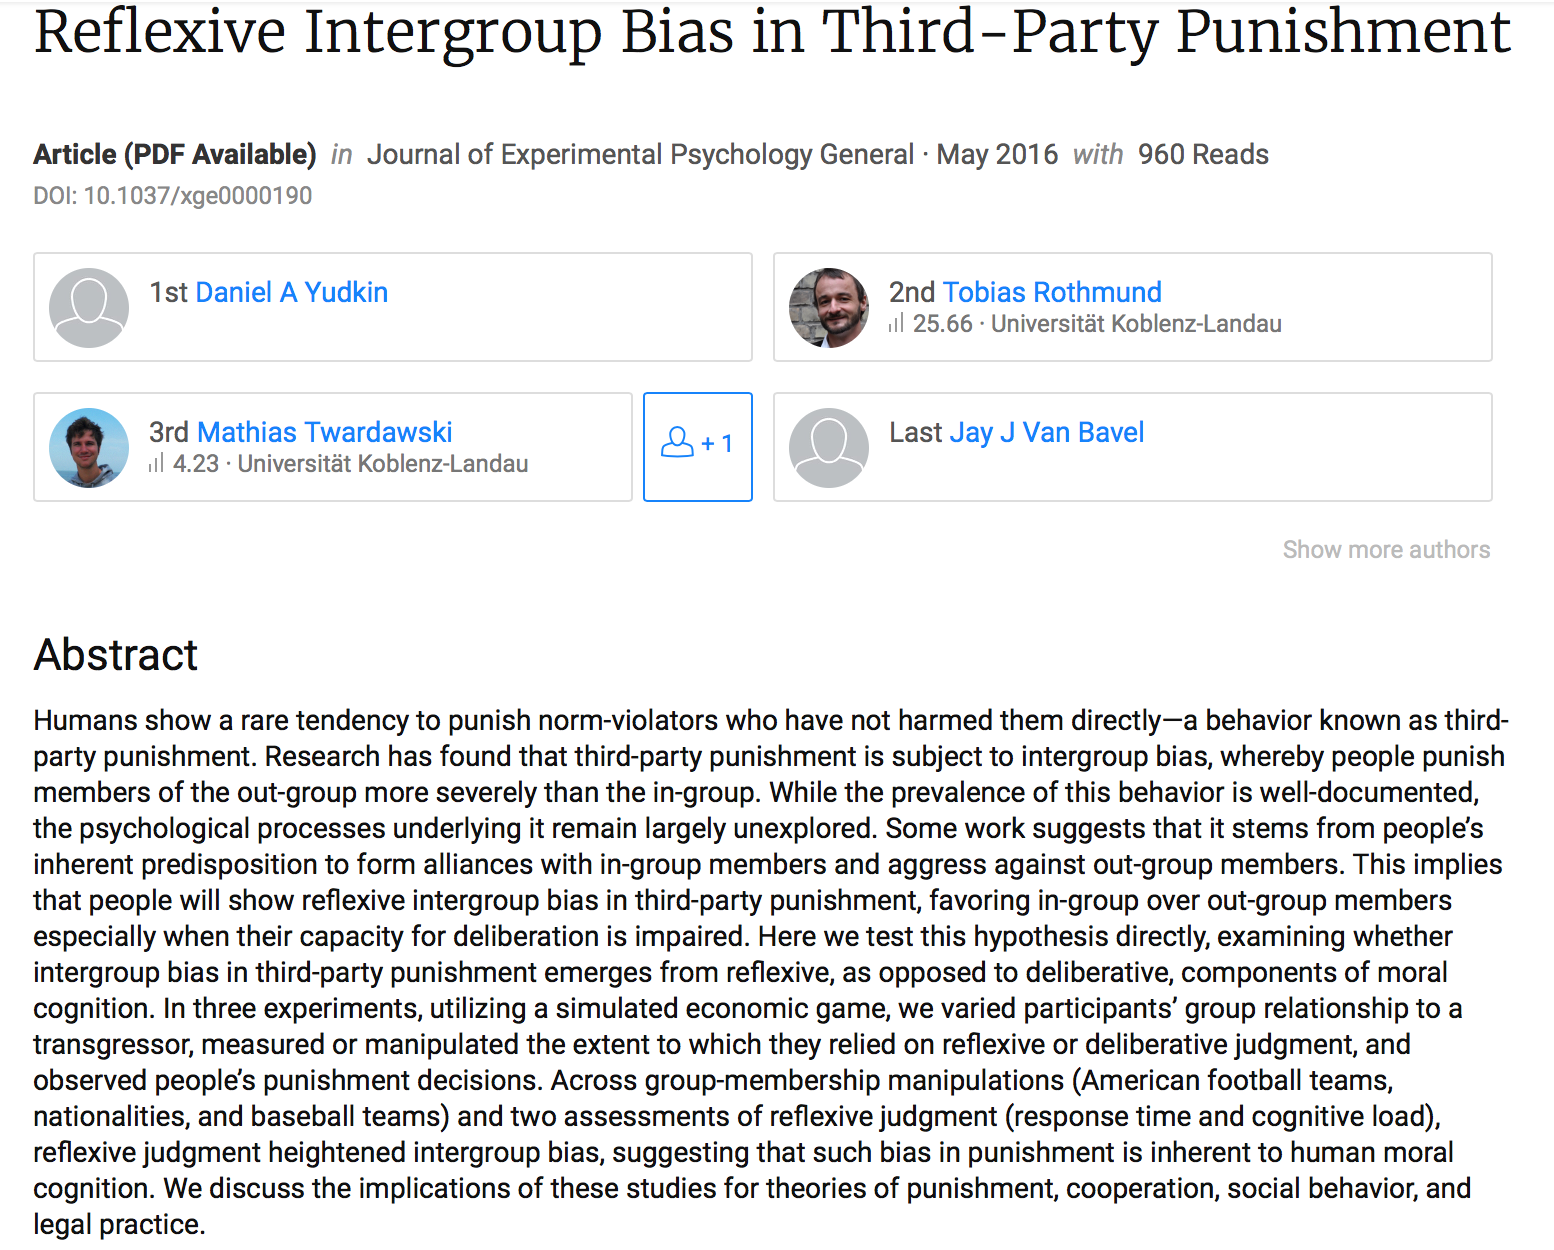 intergroup contact hypothesis This paper evaluates the state of contact hypothesis research from a policy perspective building on pettigrew and tropp's (2006) influential meta-analysis, we assemble all intergroup contact studies that feature random assignment and delayed outcome measures, of which there are 27 in total.